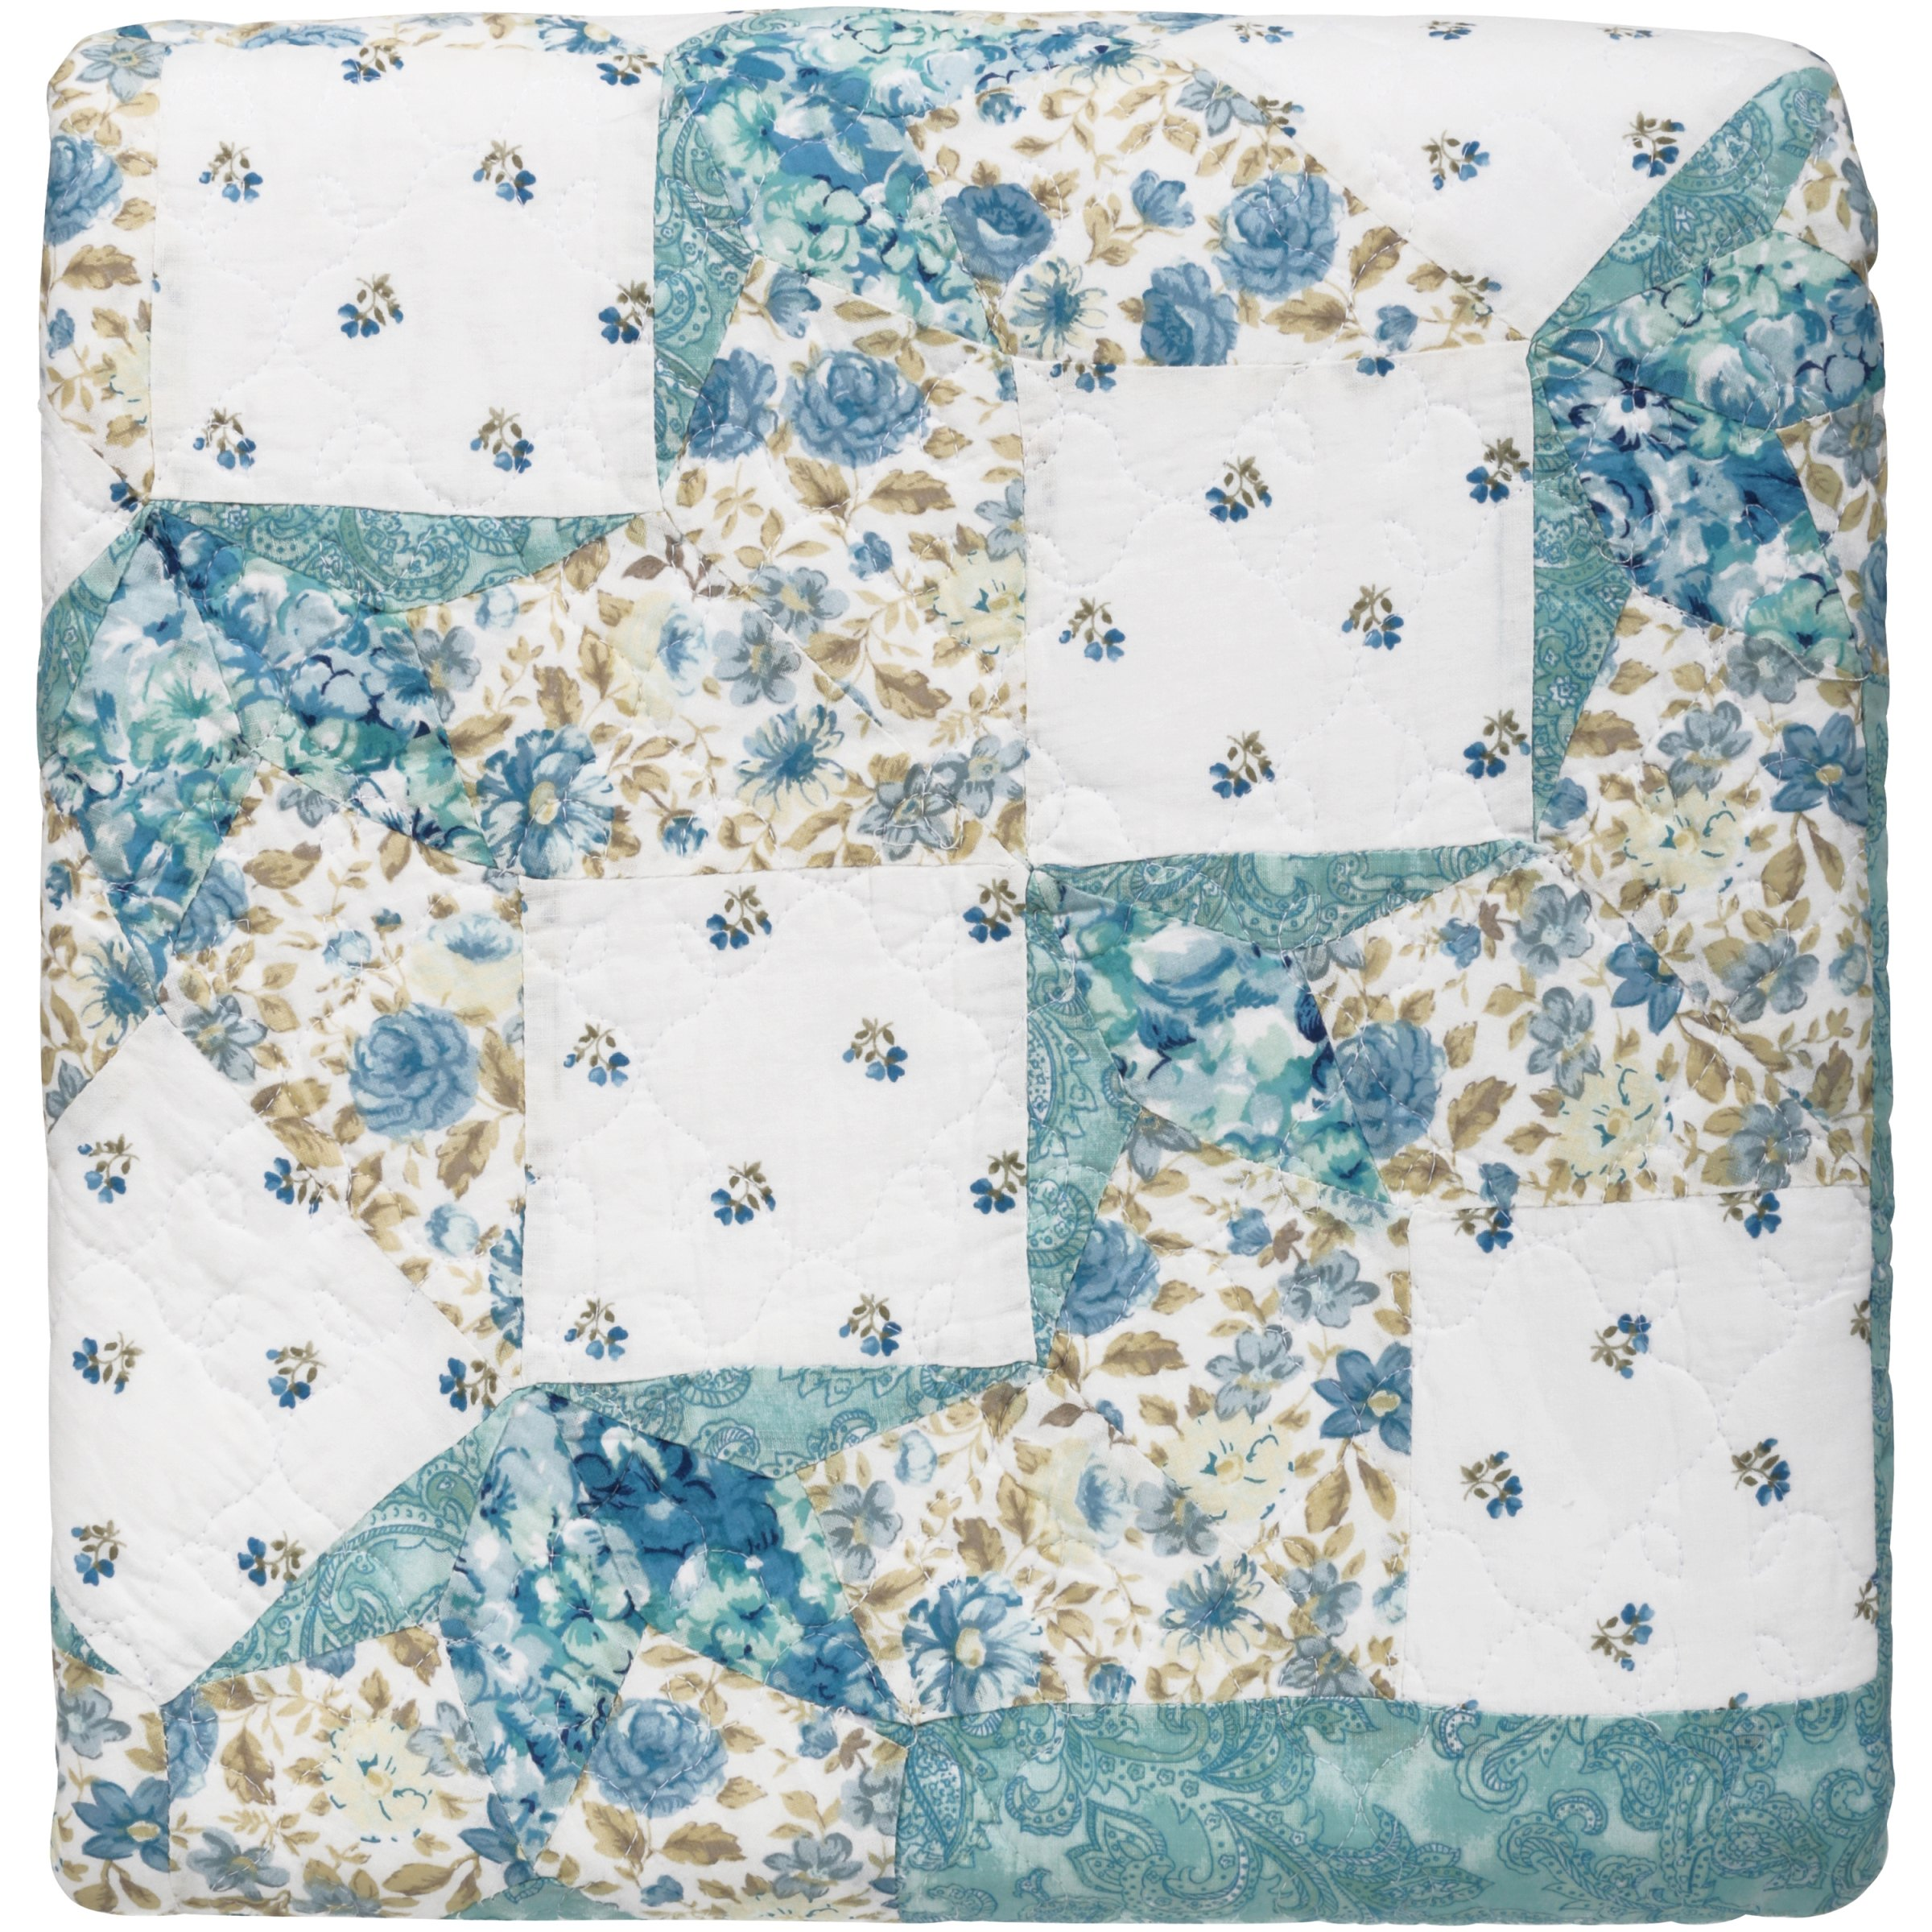 Better Homes and Gardens Polka Dot Patchwork Quilt